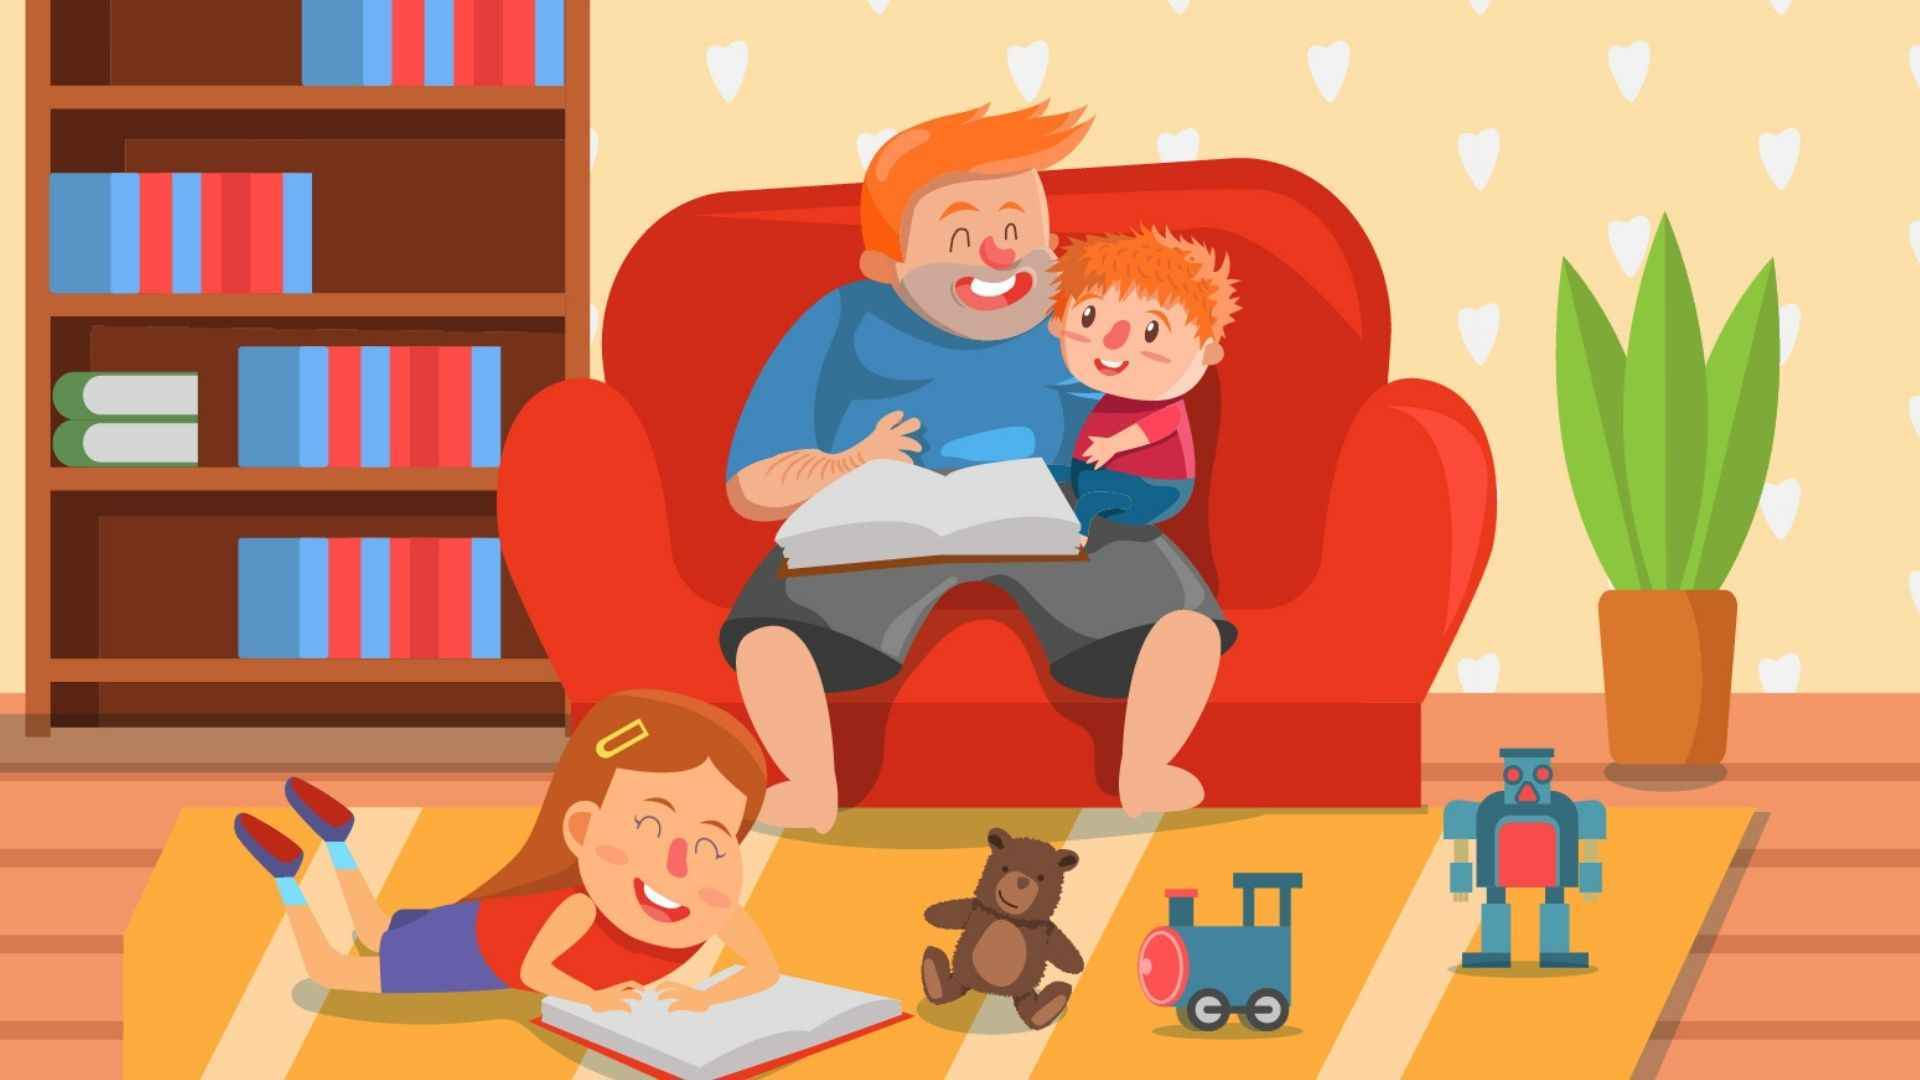 Parent spends time with children - animation